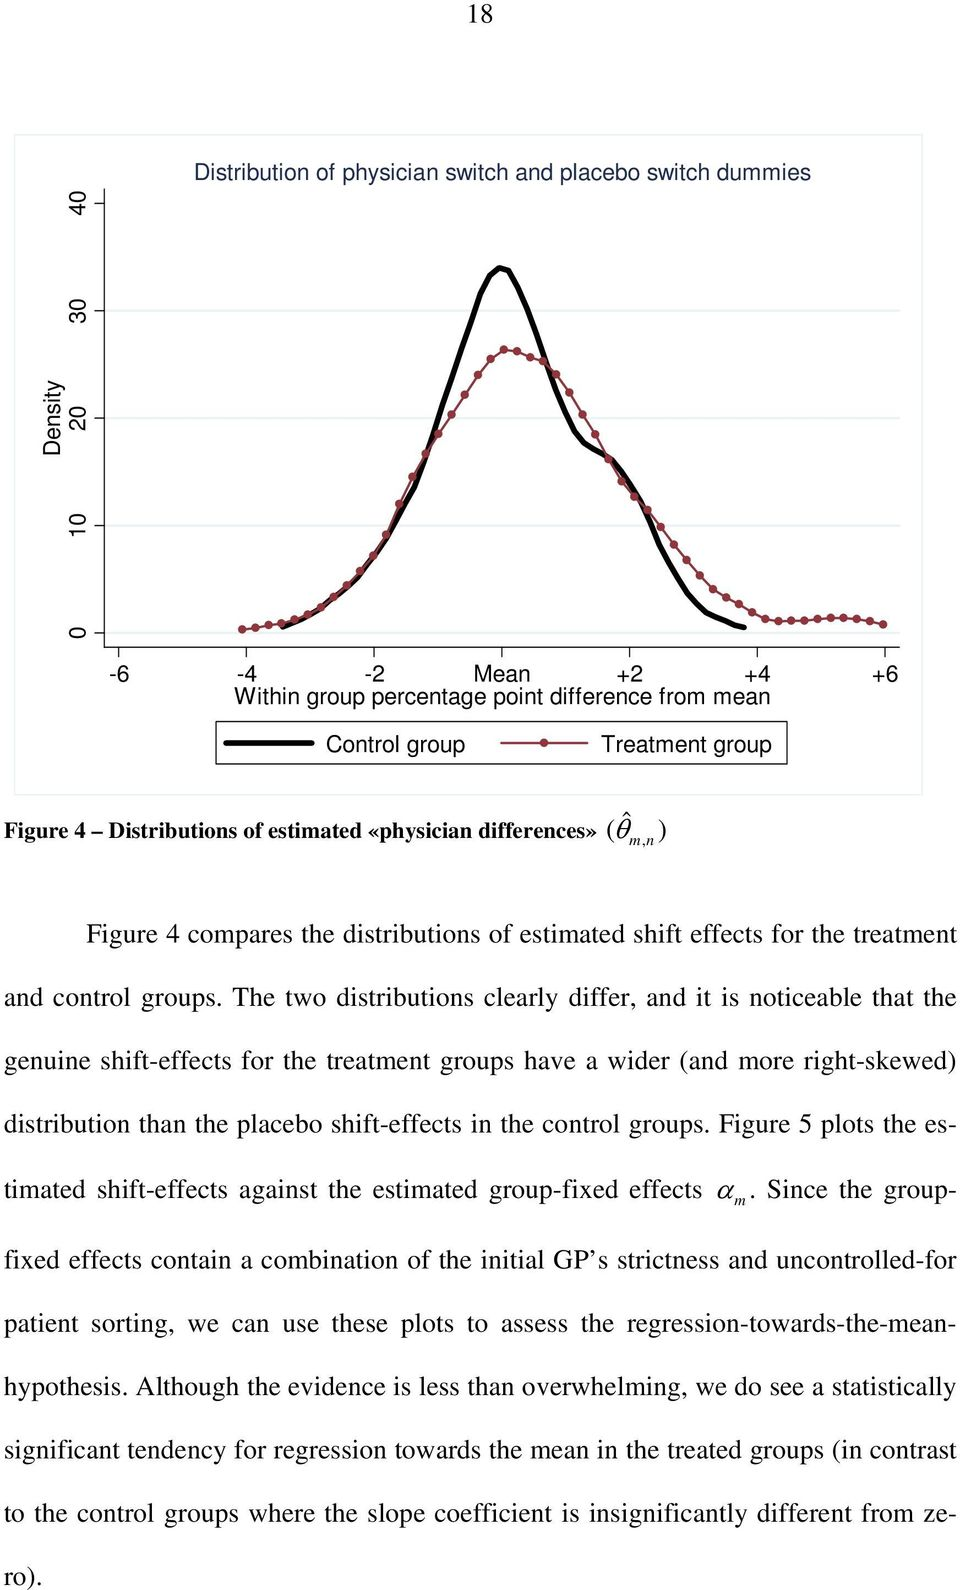 The two distributions clearly differ, and it is noticeable that the genuine shift-effects for the treatment groups have a wider (and more right-skewed) distribution than the placebo shift-effects in